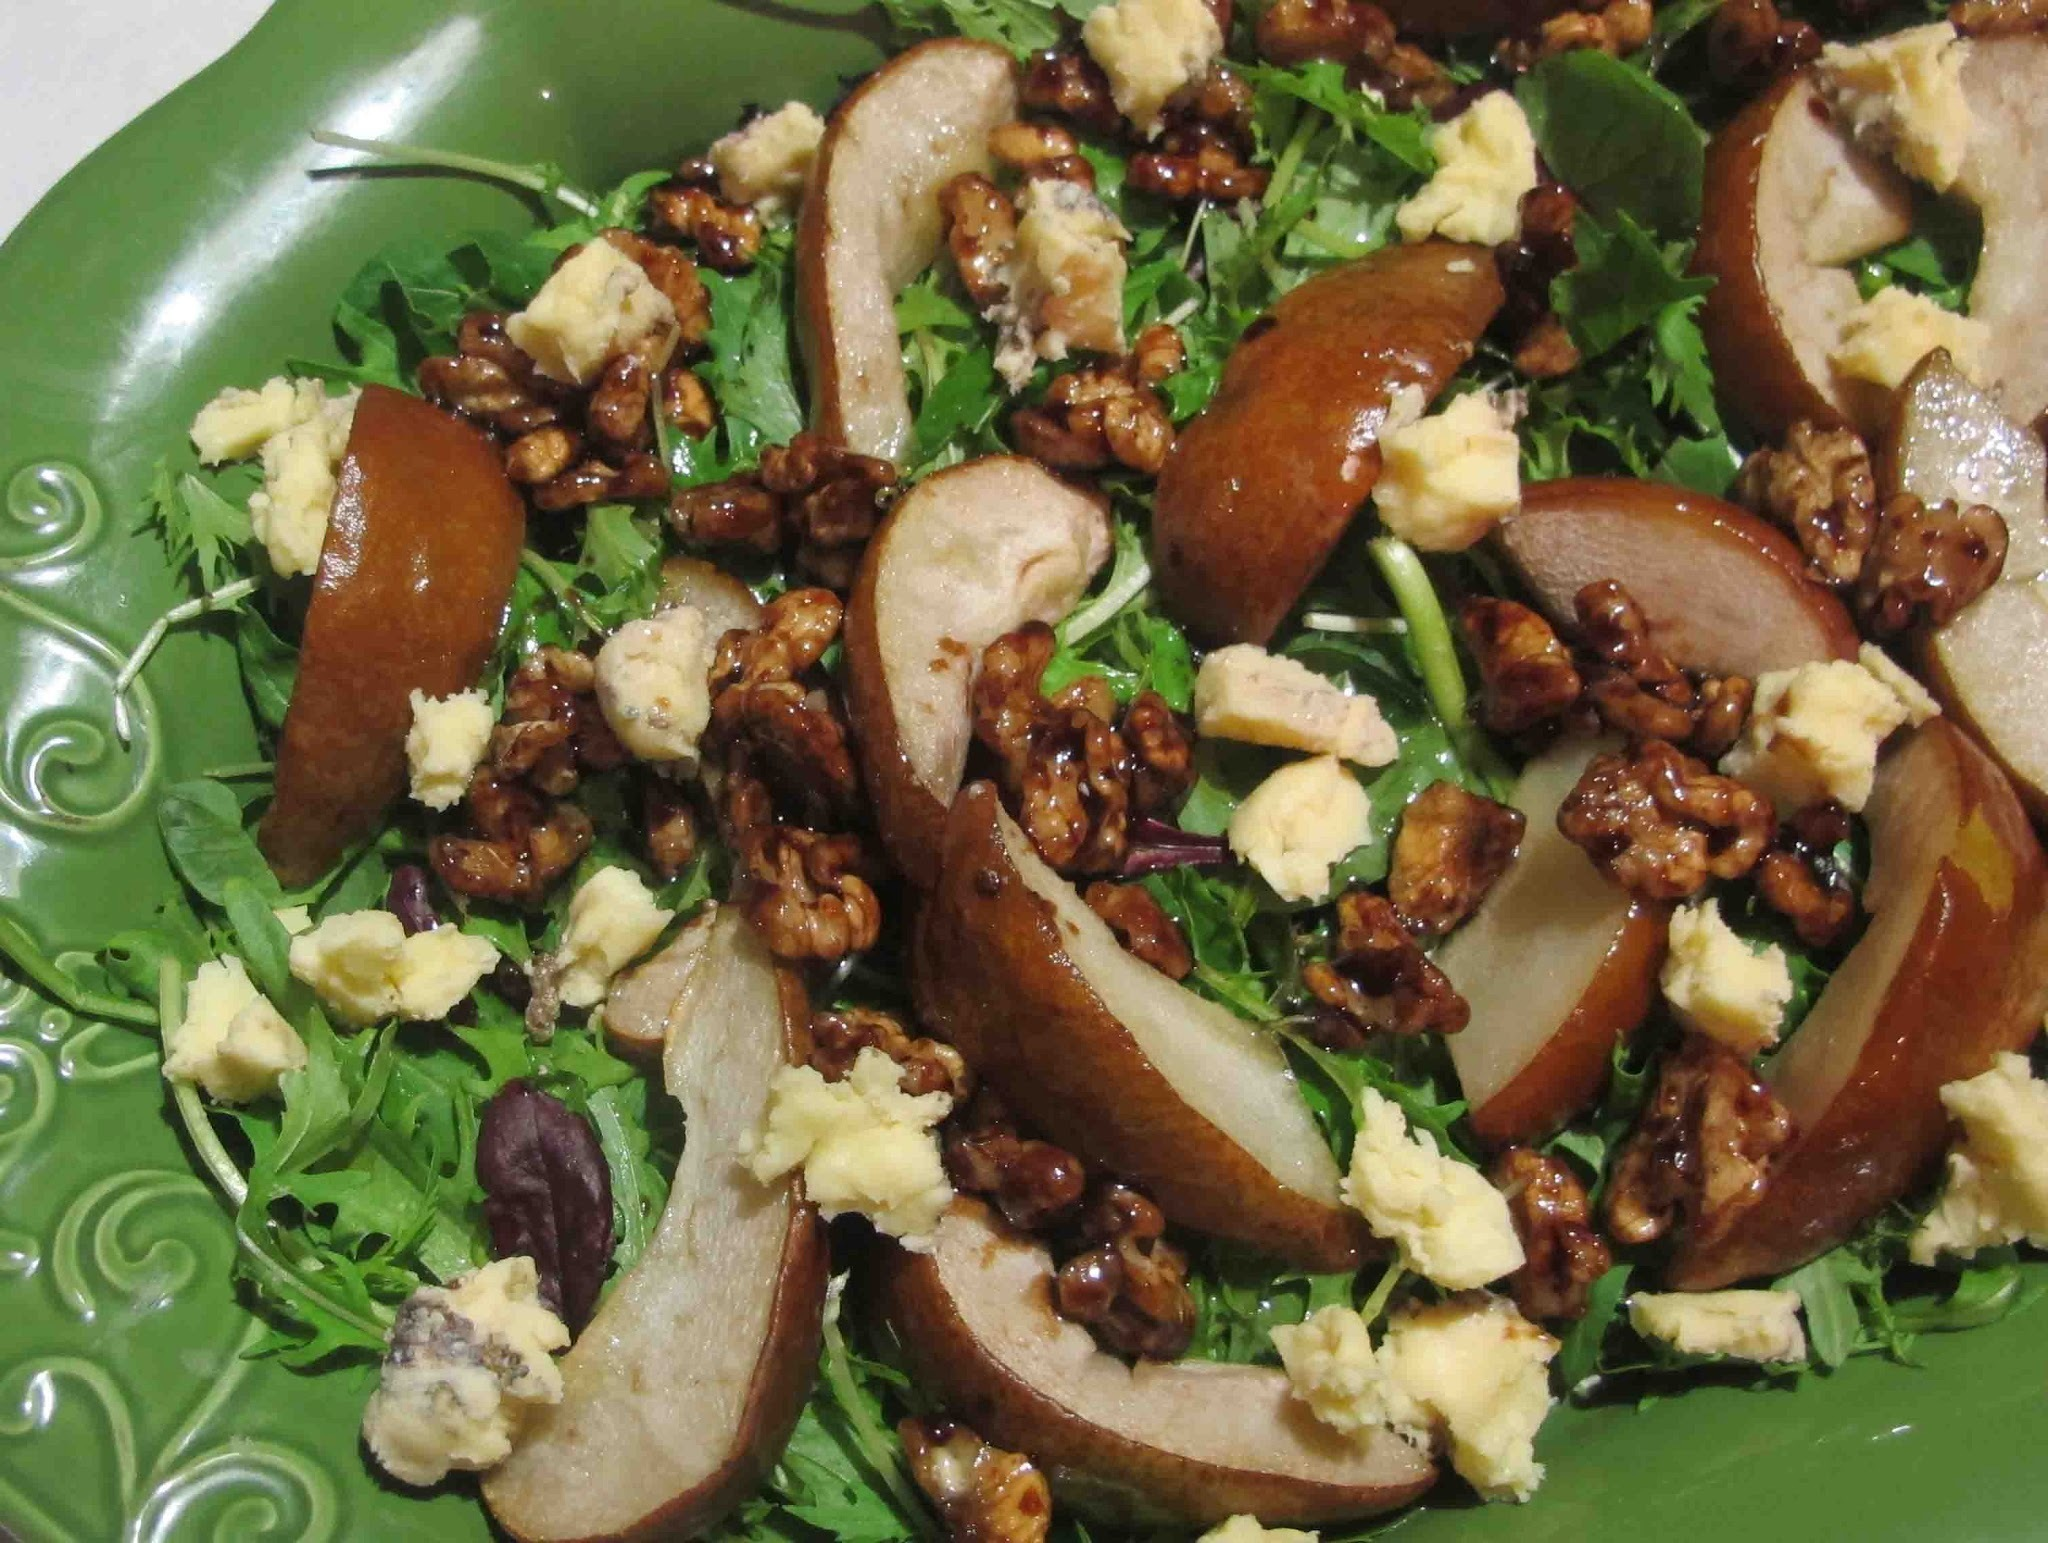 Pear, gorgonzola and sticky walnut salad